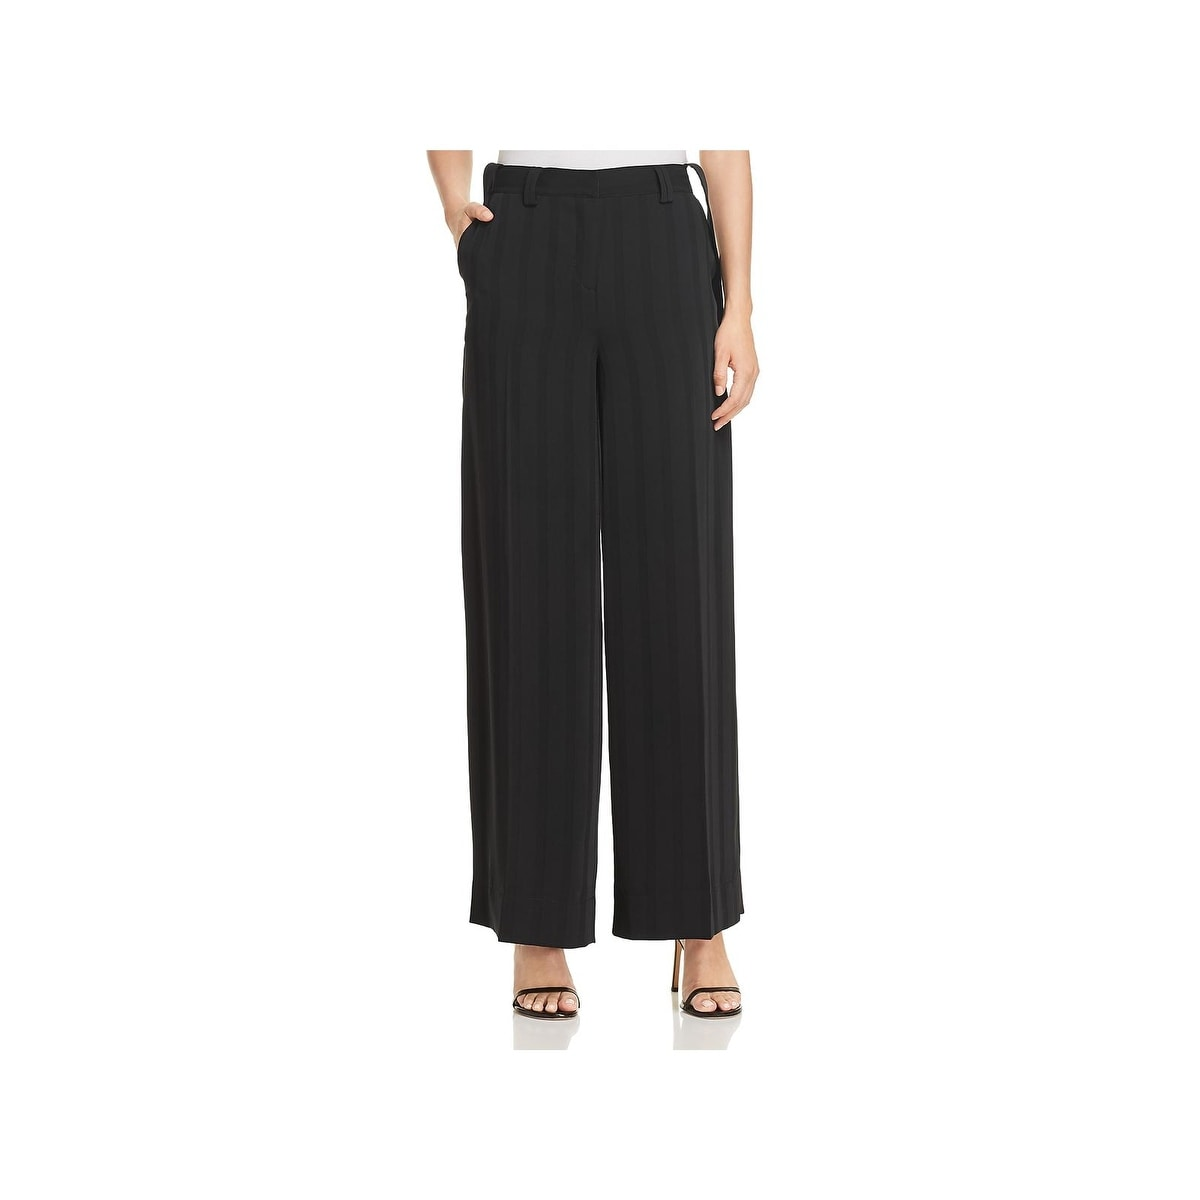 37fbbed726 Shop Kenneth Cole Womens Wide Leg Pants Striped High-Waisted - Free  Shipping On Orders Over $45 - Overstock - 23447099